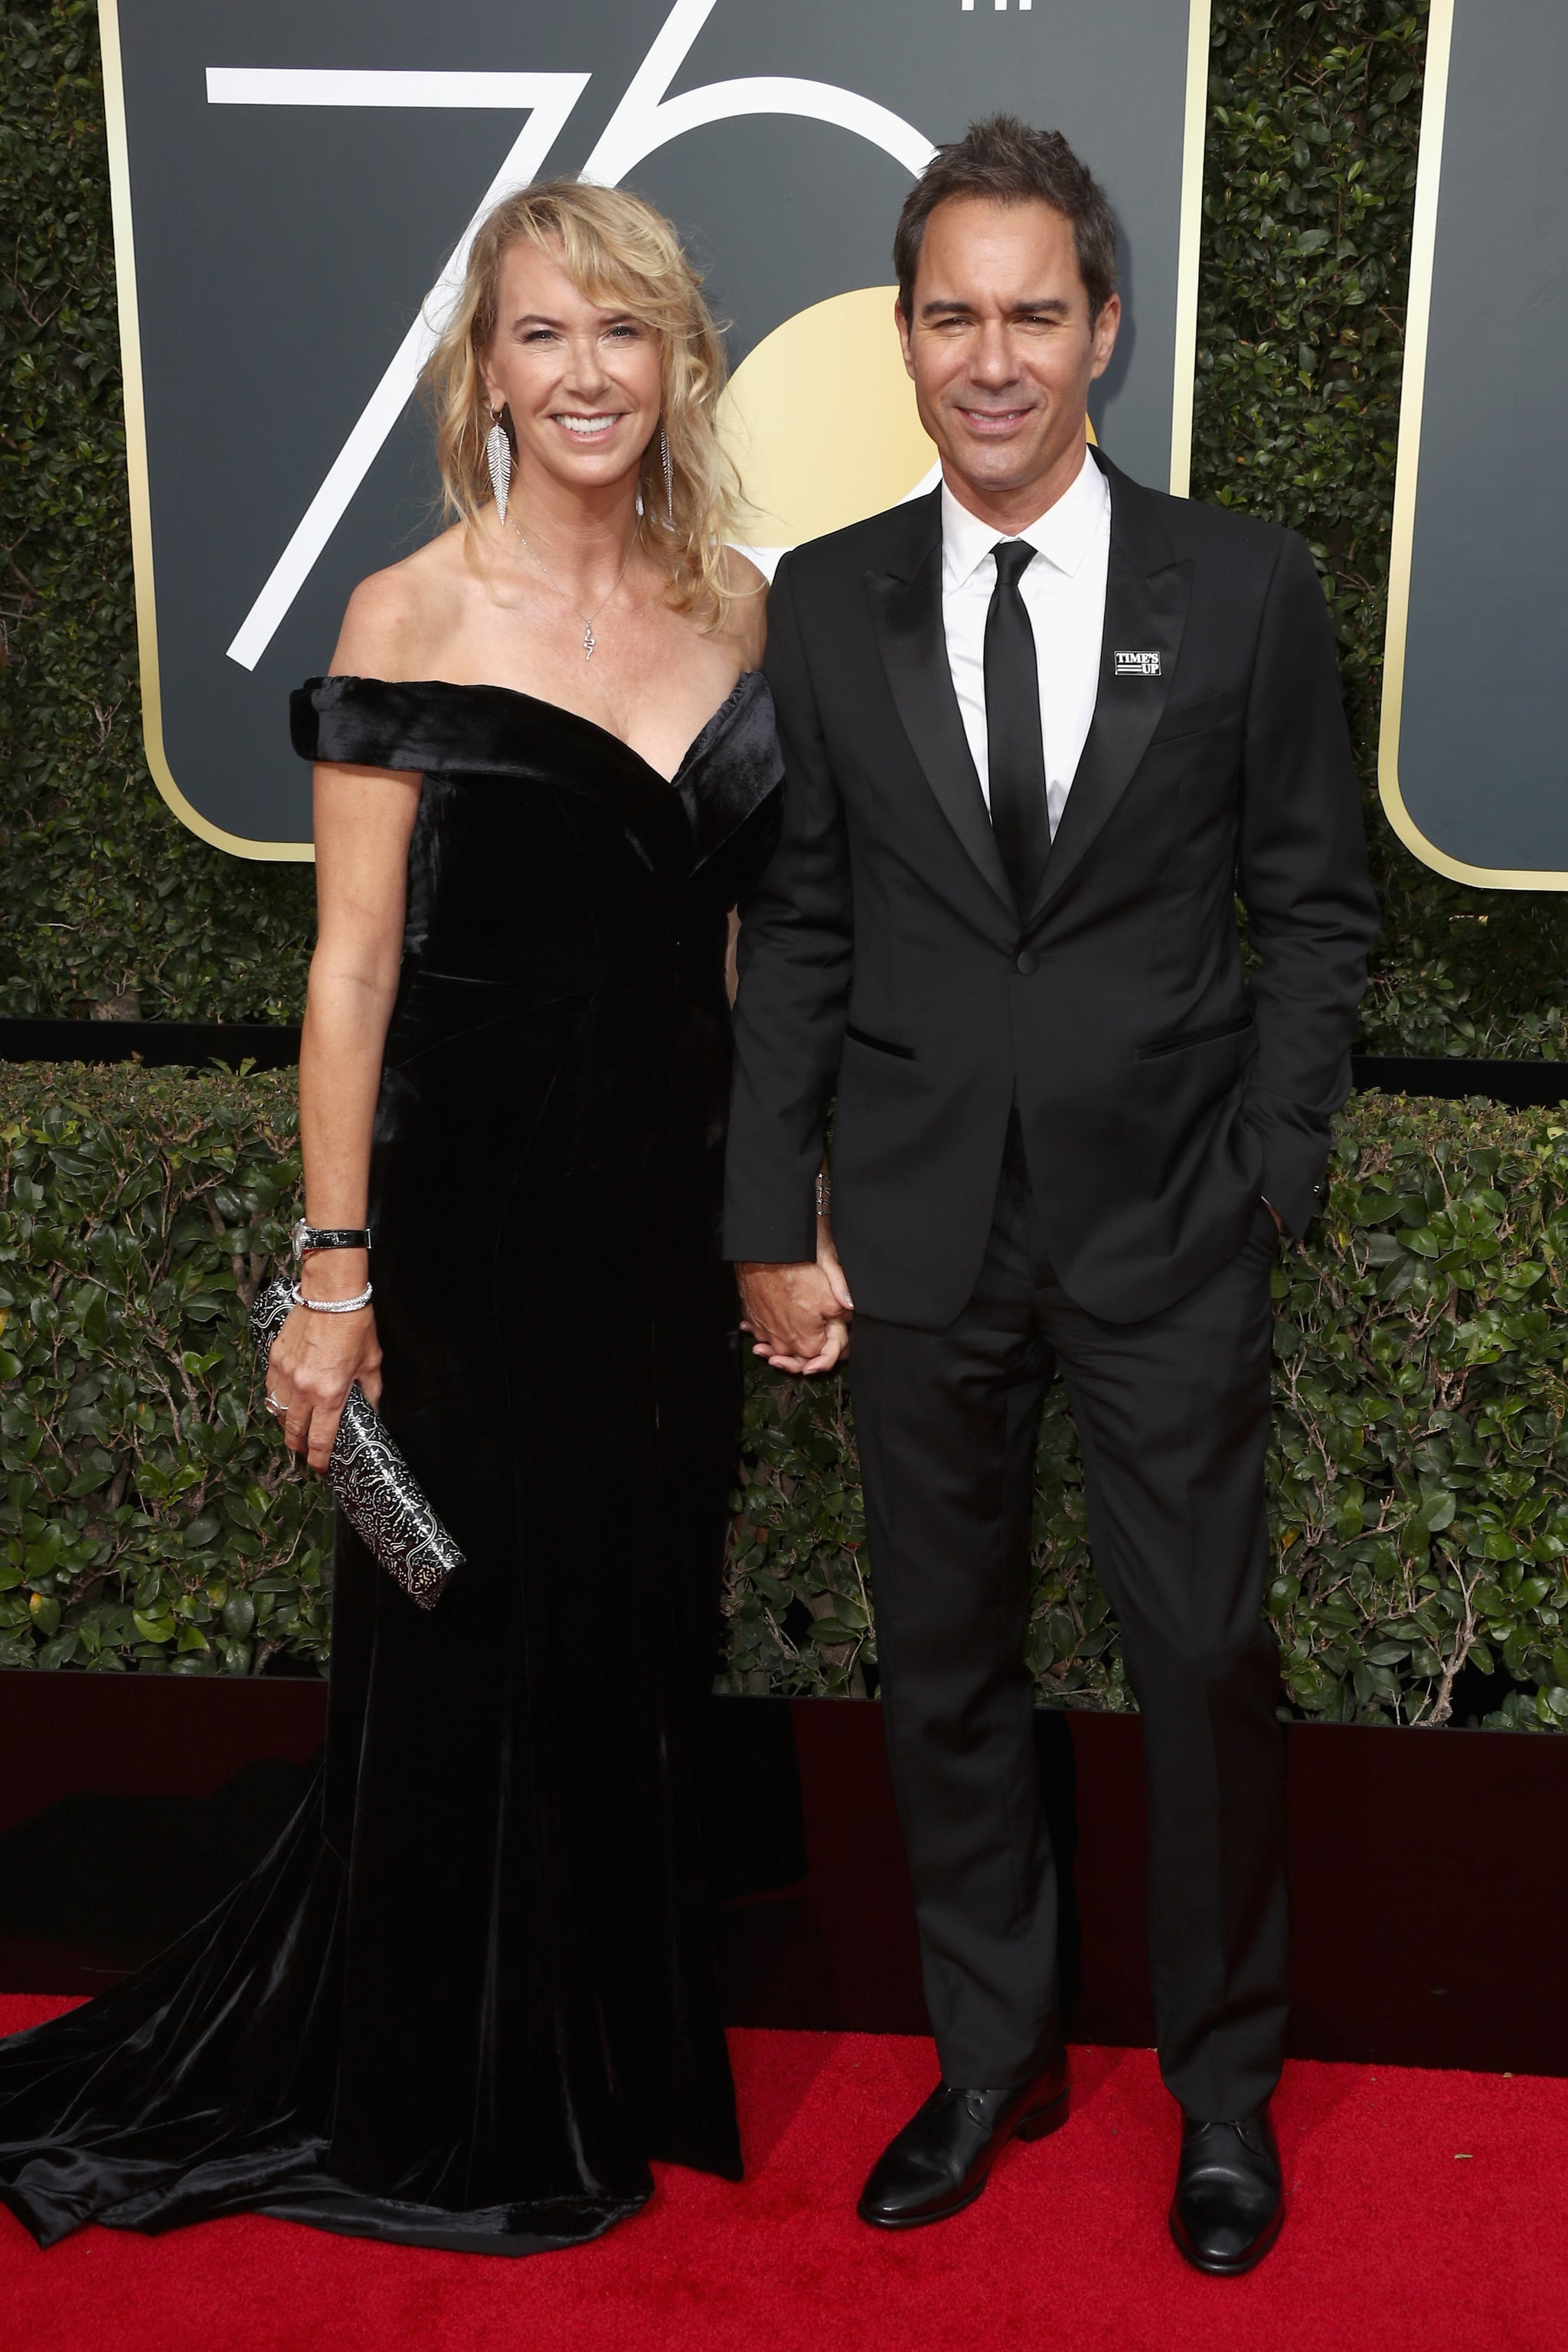 Eric Mccormack And Janet Holden These Celebrity Couples Made The Golden Globes Their Own Personal Date Night Popsugar Celebrity Photo 2 View janet holden's genealogy family tree on geni, with over 190 million profiles of ancestors and living relatives. eric mccormack and janet holden these